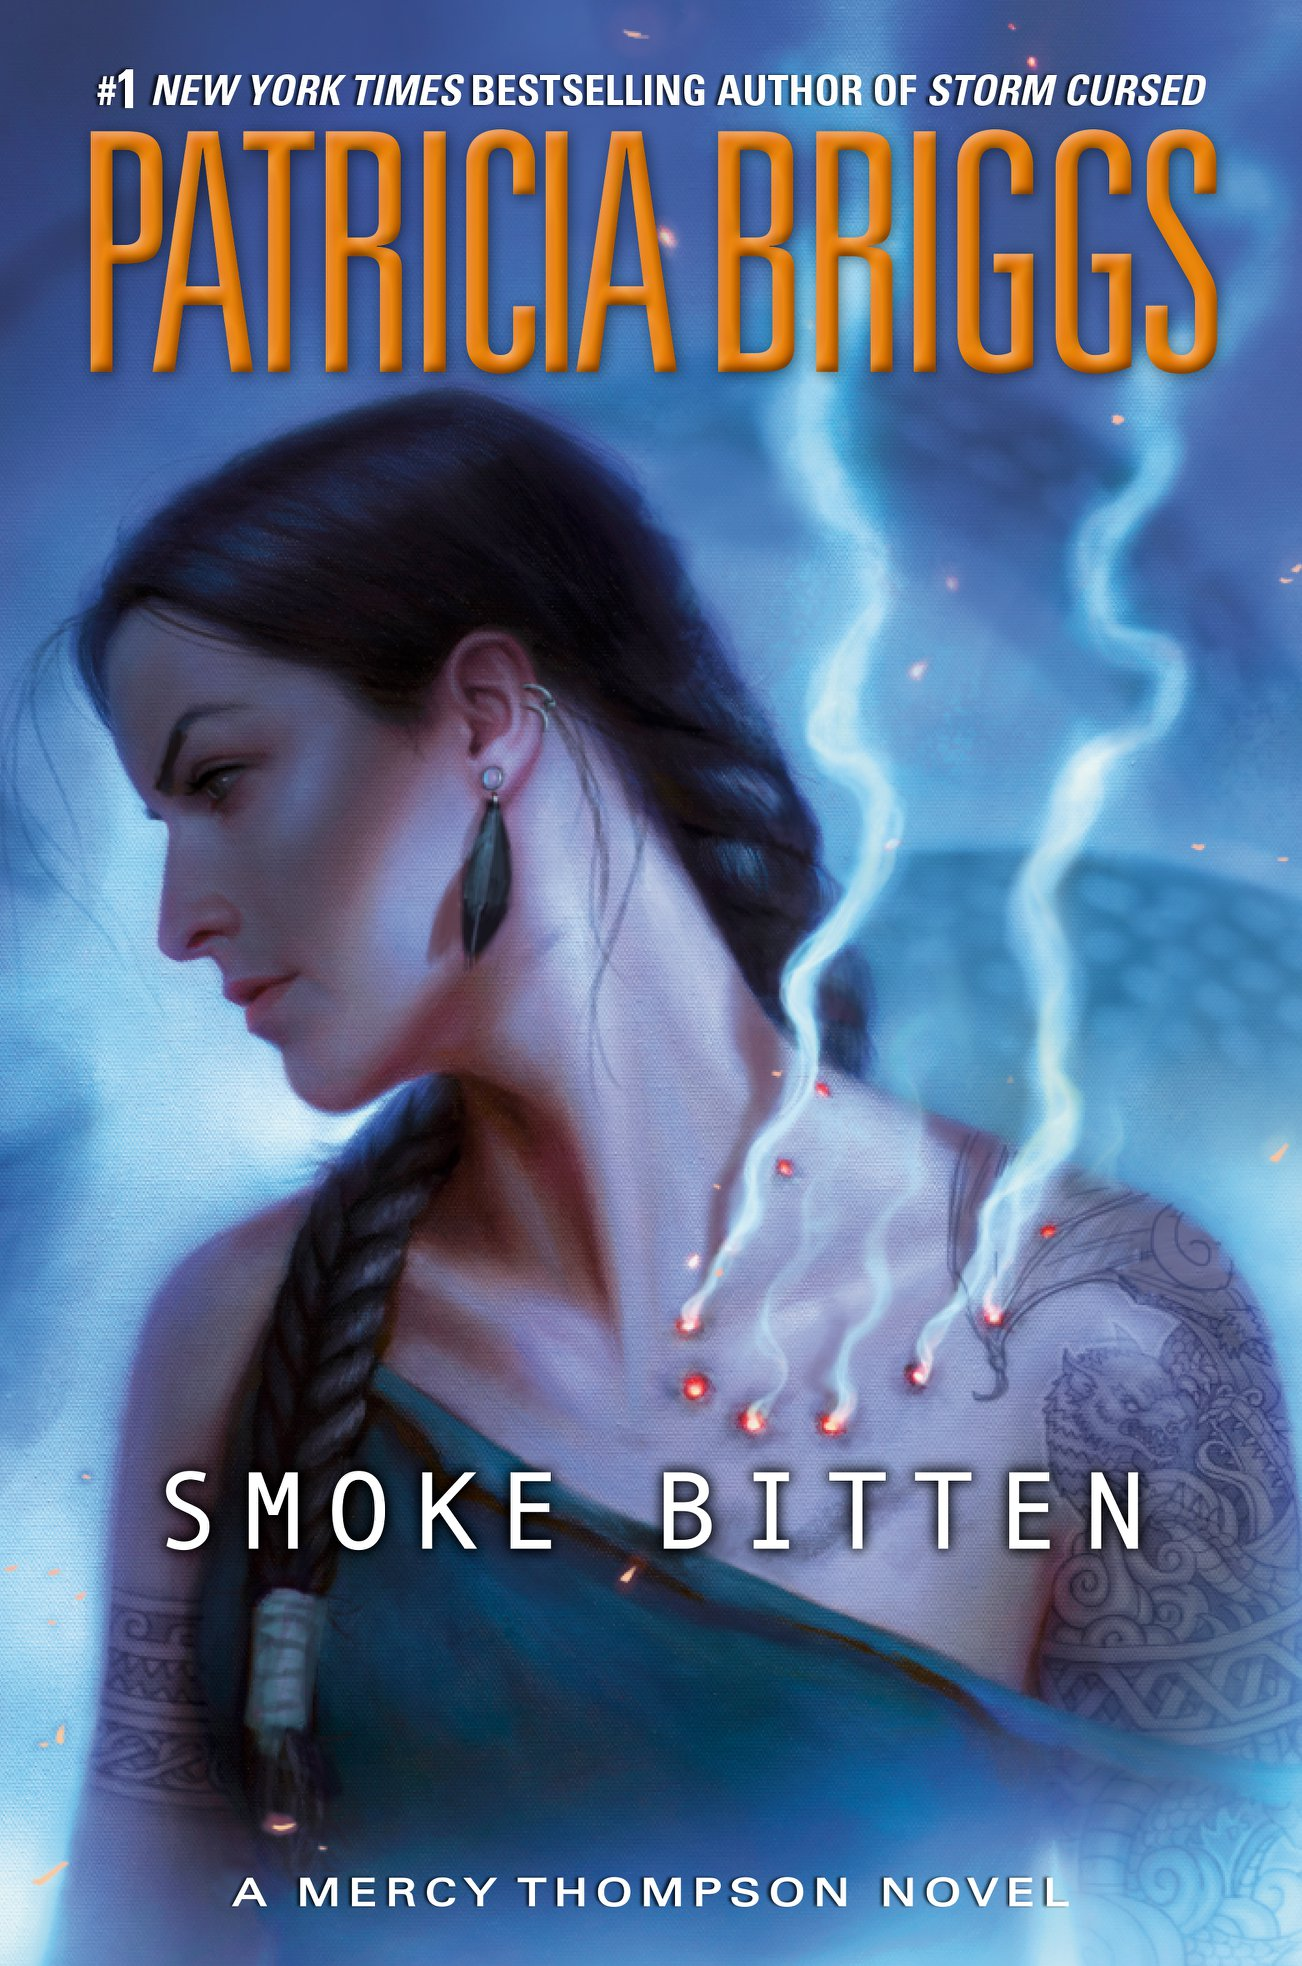 Smoke Bitten by Patricia Briggs